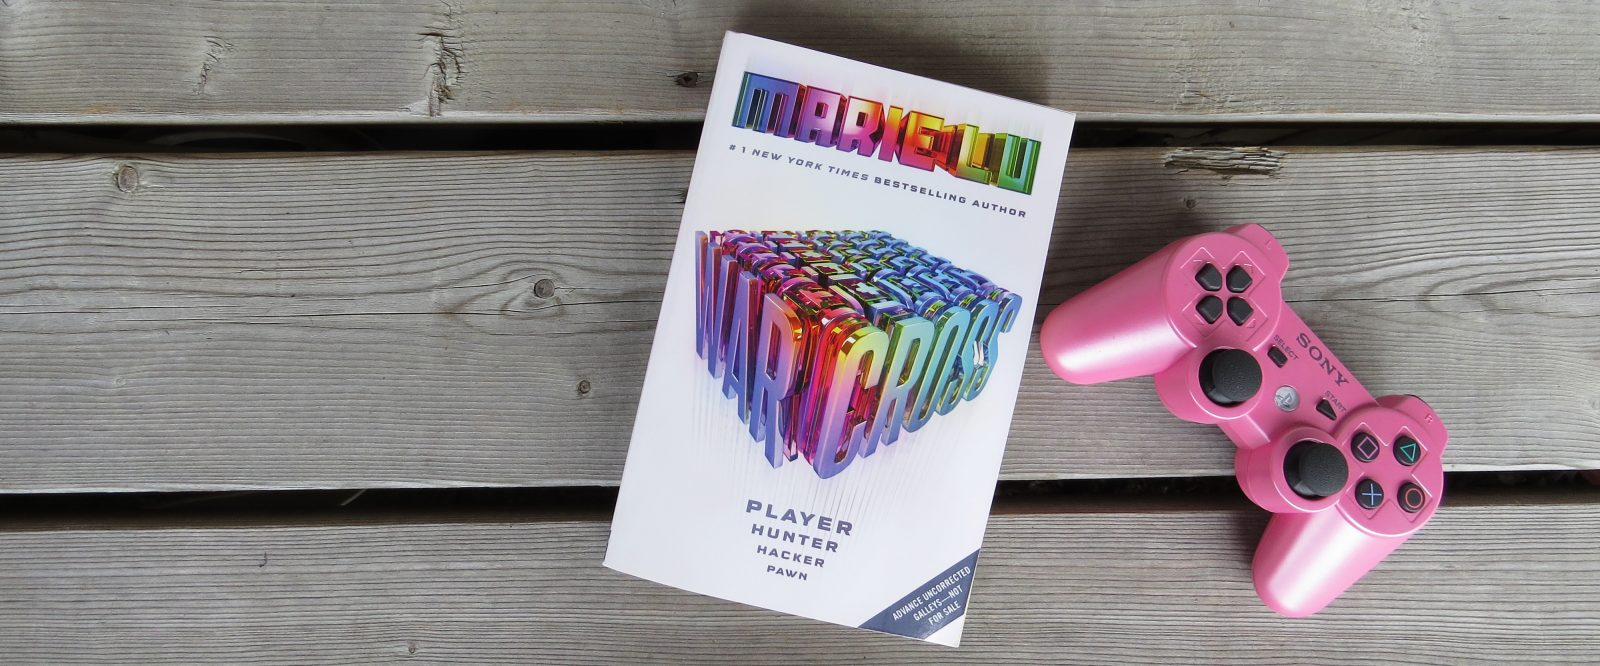 Review | Warcross by Marie Lu